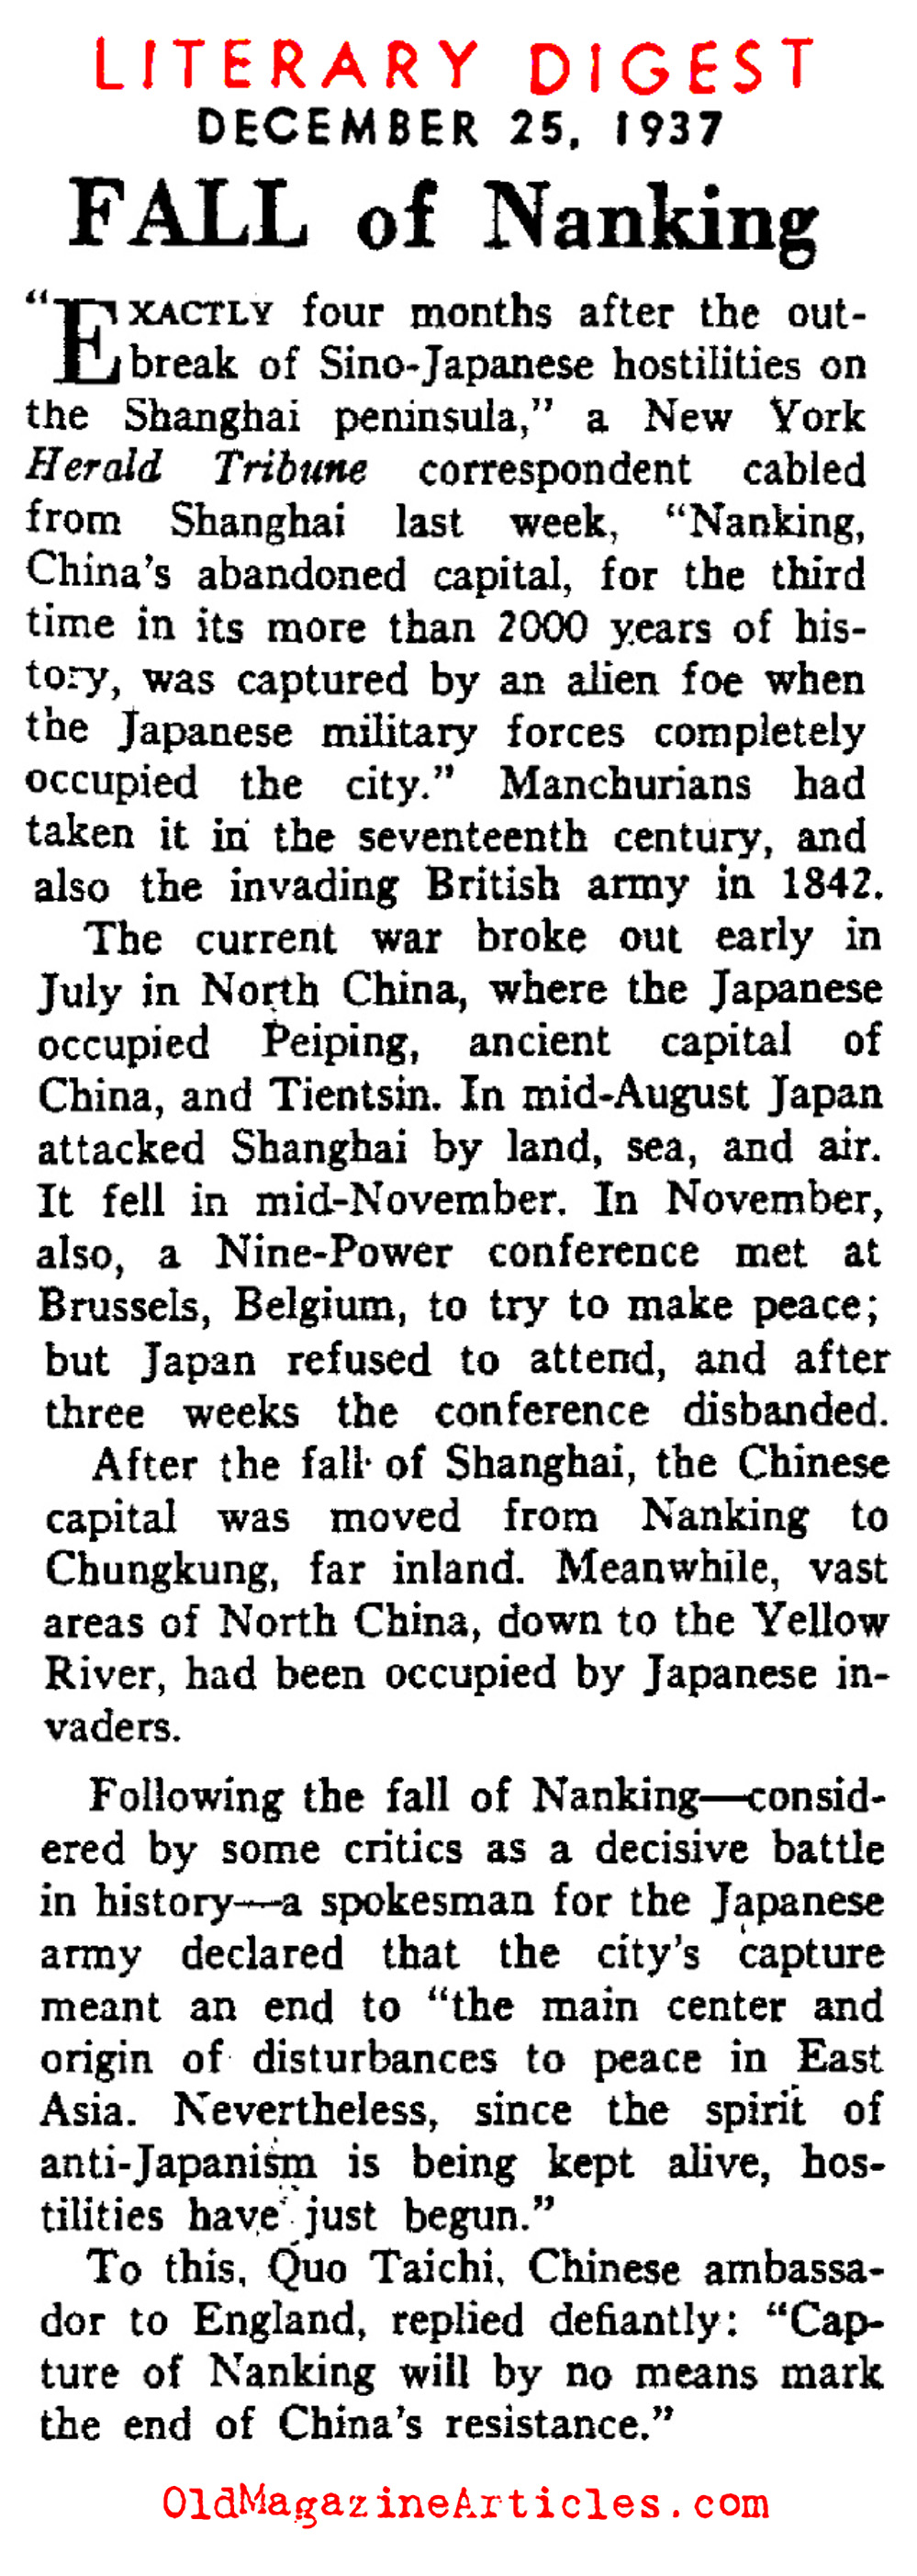 Nanking Falls (The Literary Digest, 1937)